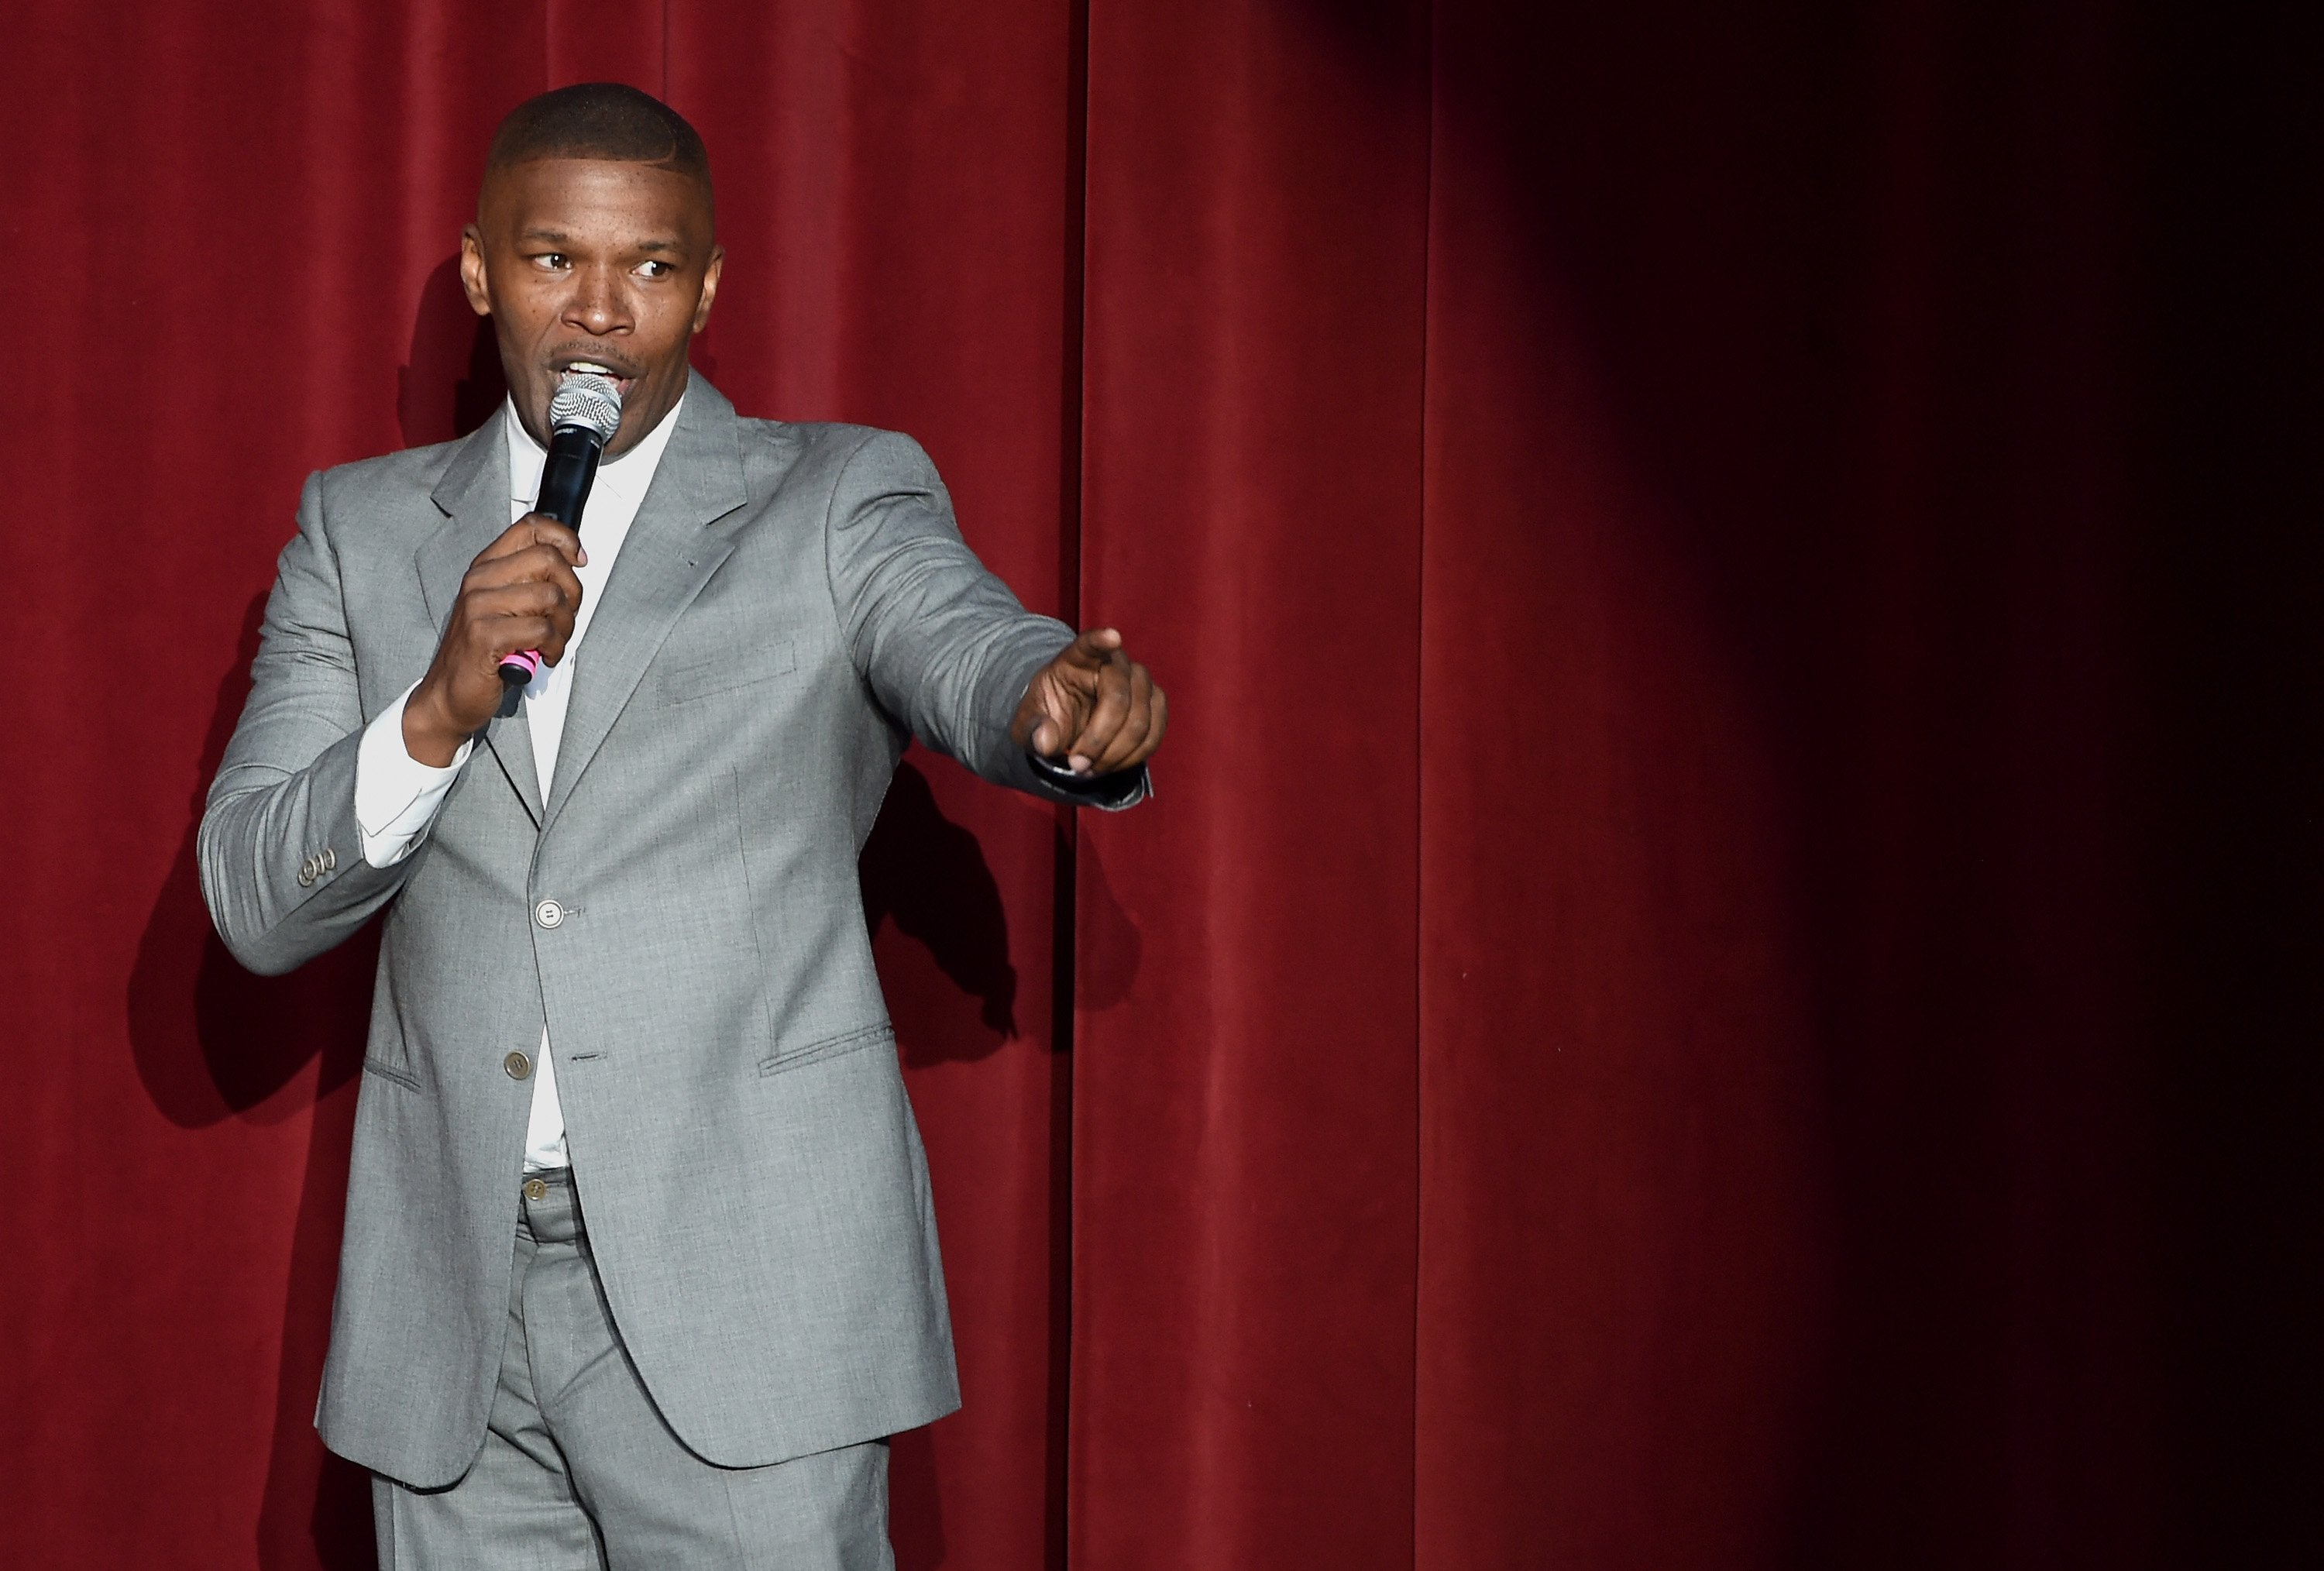 Croatian Police Arrest 2 People Who Reportedly Used A Racial Slur Against Jamie Foxx